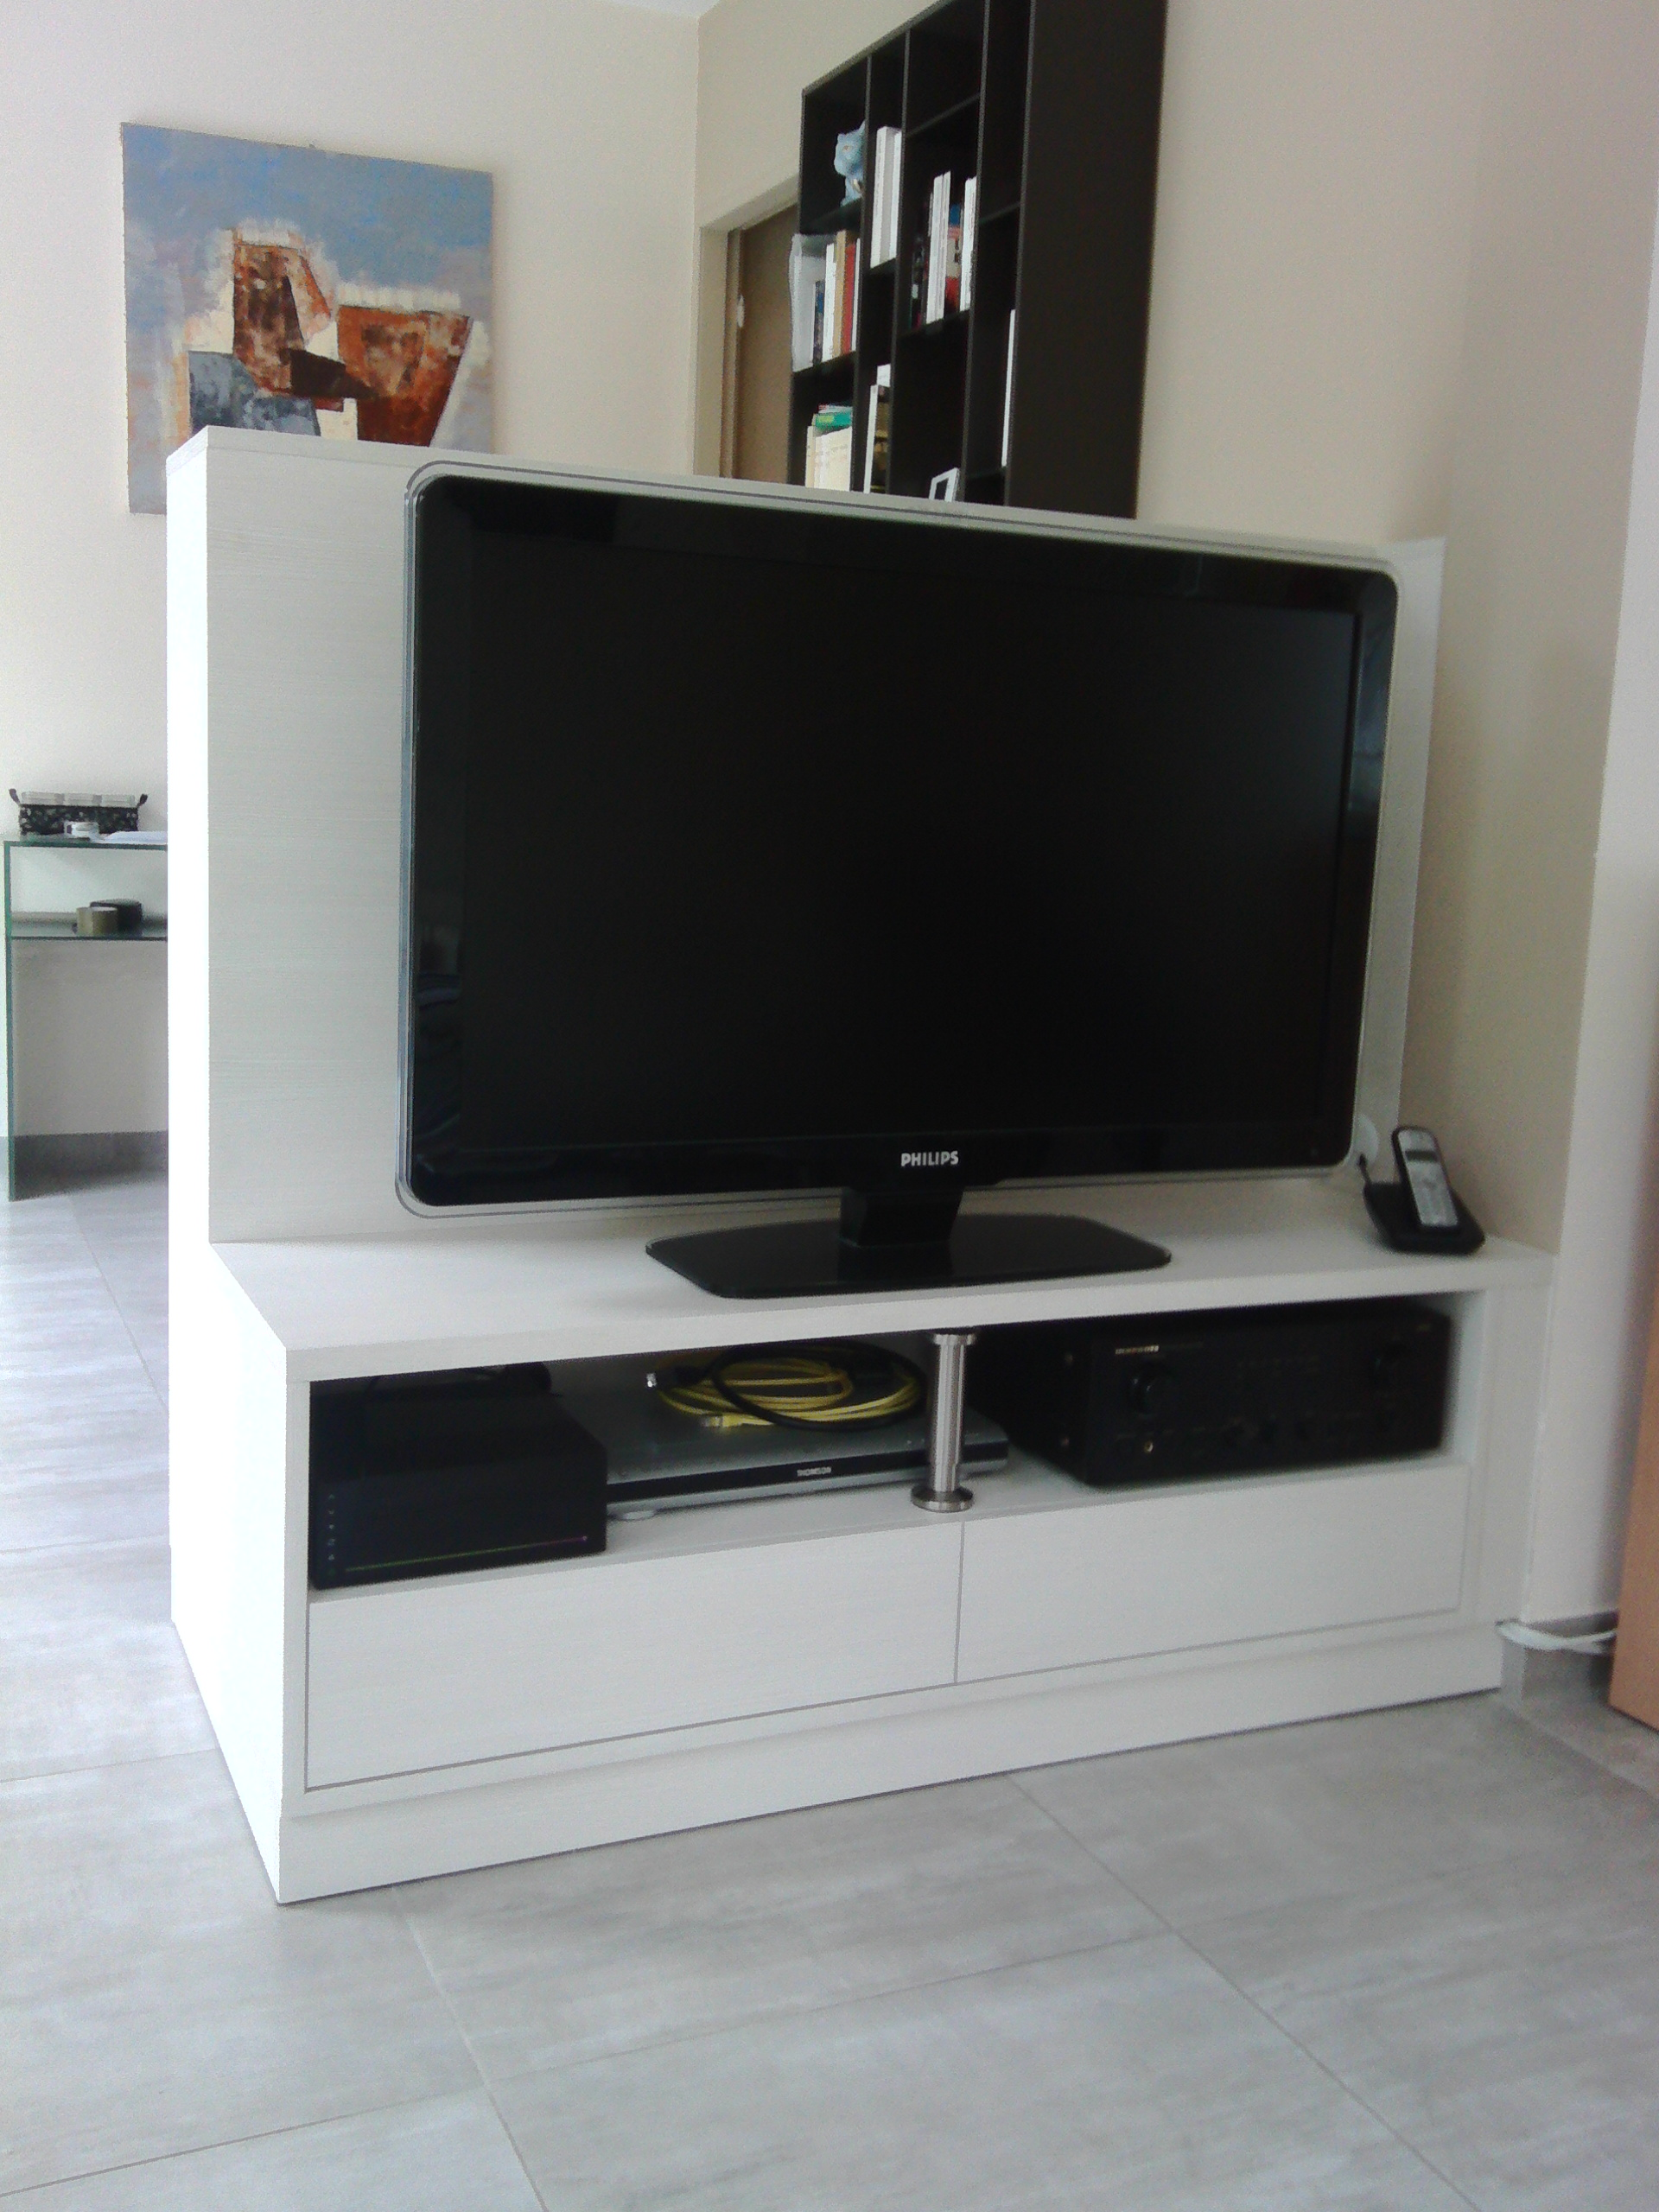 meuble tv en s paration de pi ces le kiosque amenagement. Black Bedroom Furniture Sets. Home Design Ideas